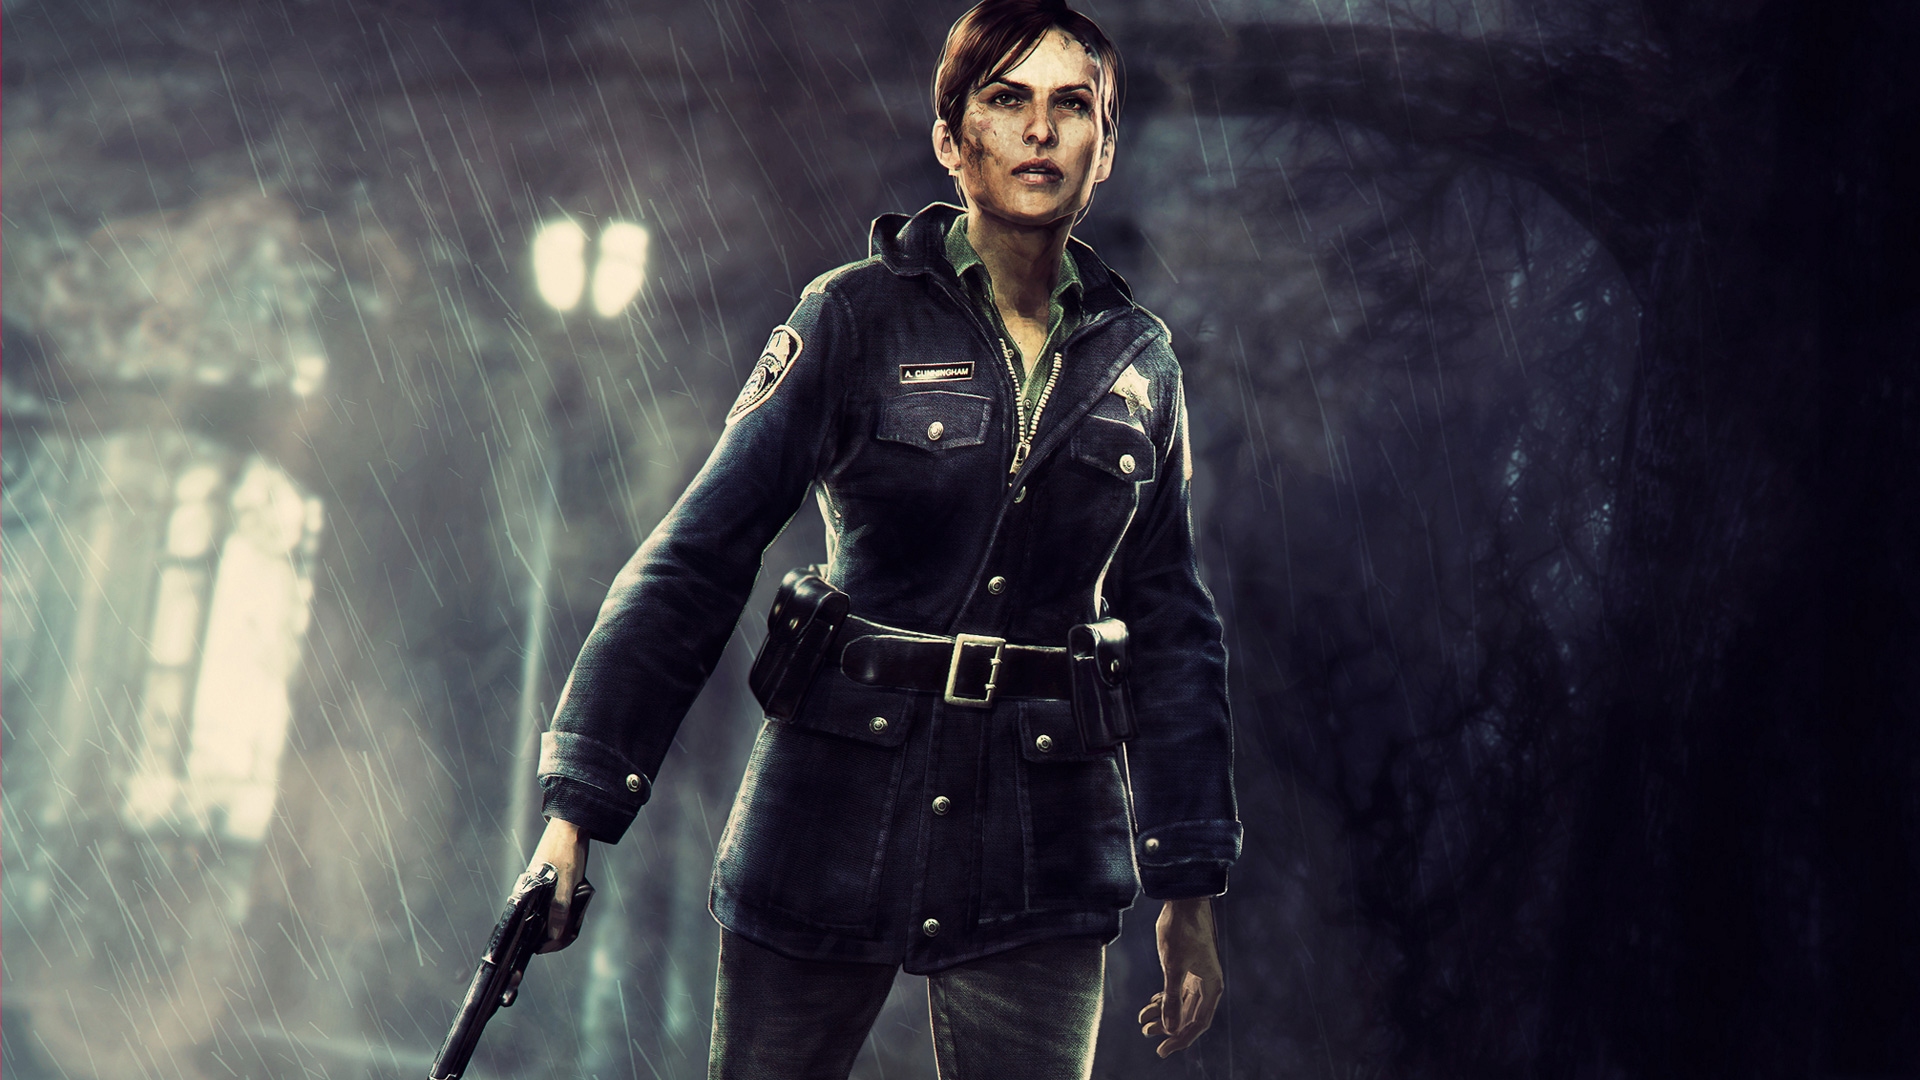 Silent Hill: Downpour Wallpaper in 1920x1080